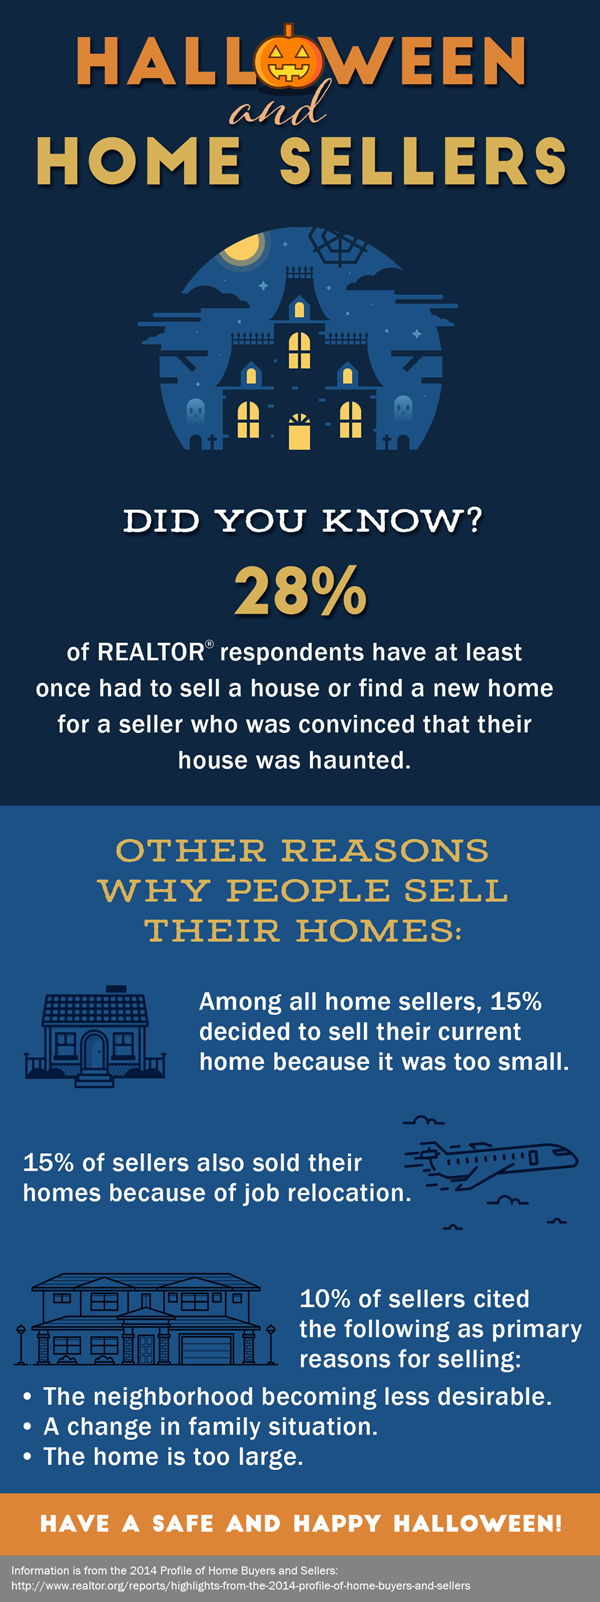 Halloween And Home Sellers Knoxville Real Estate Shannon Foster Boline Group